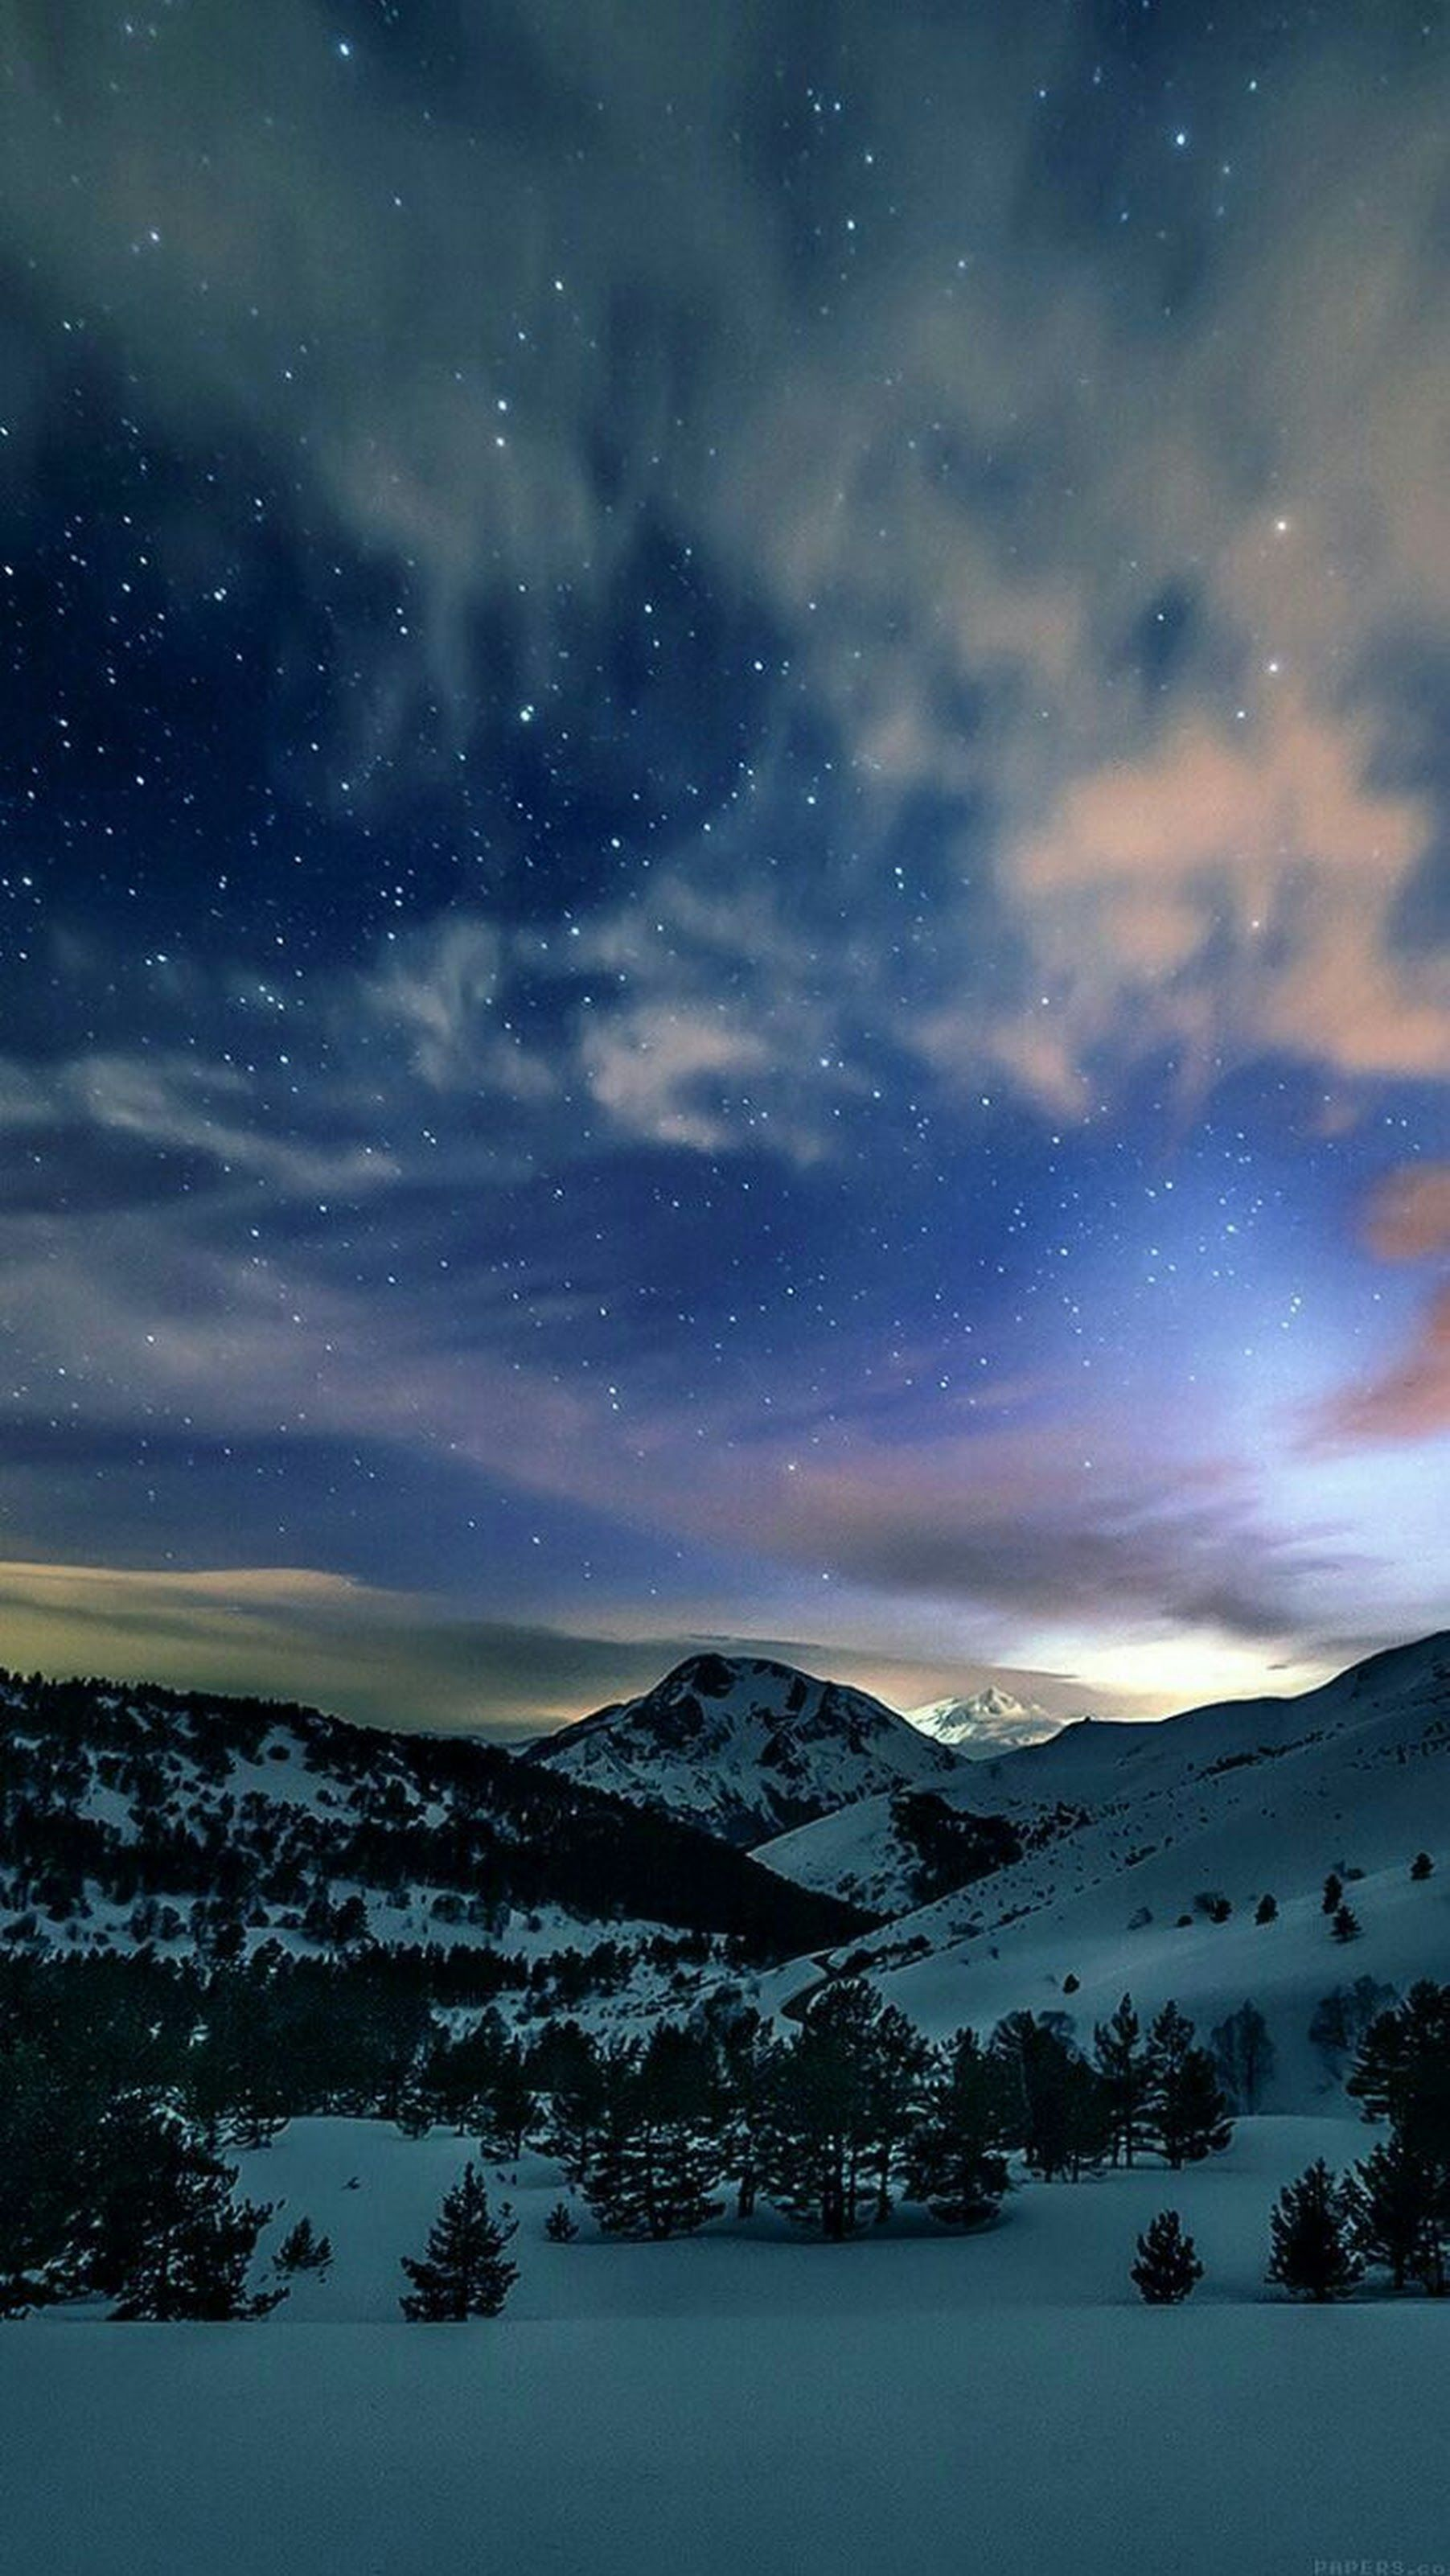 Pin By Hurricane Alley On Photography Iphone Wallpaper Winter Nature Wallpaper Winter Wallpaper